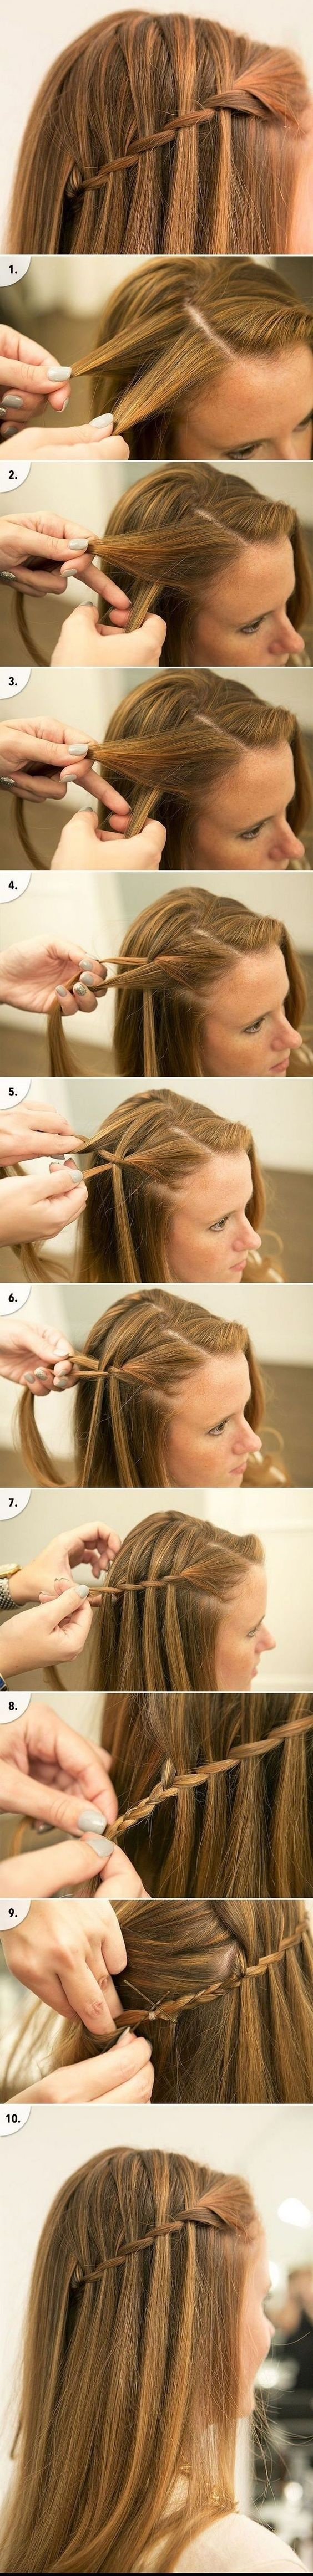 Get Beautiful Hair With These Easy and Fast Haircut Tutos Hairdressing